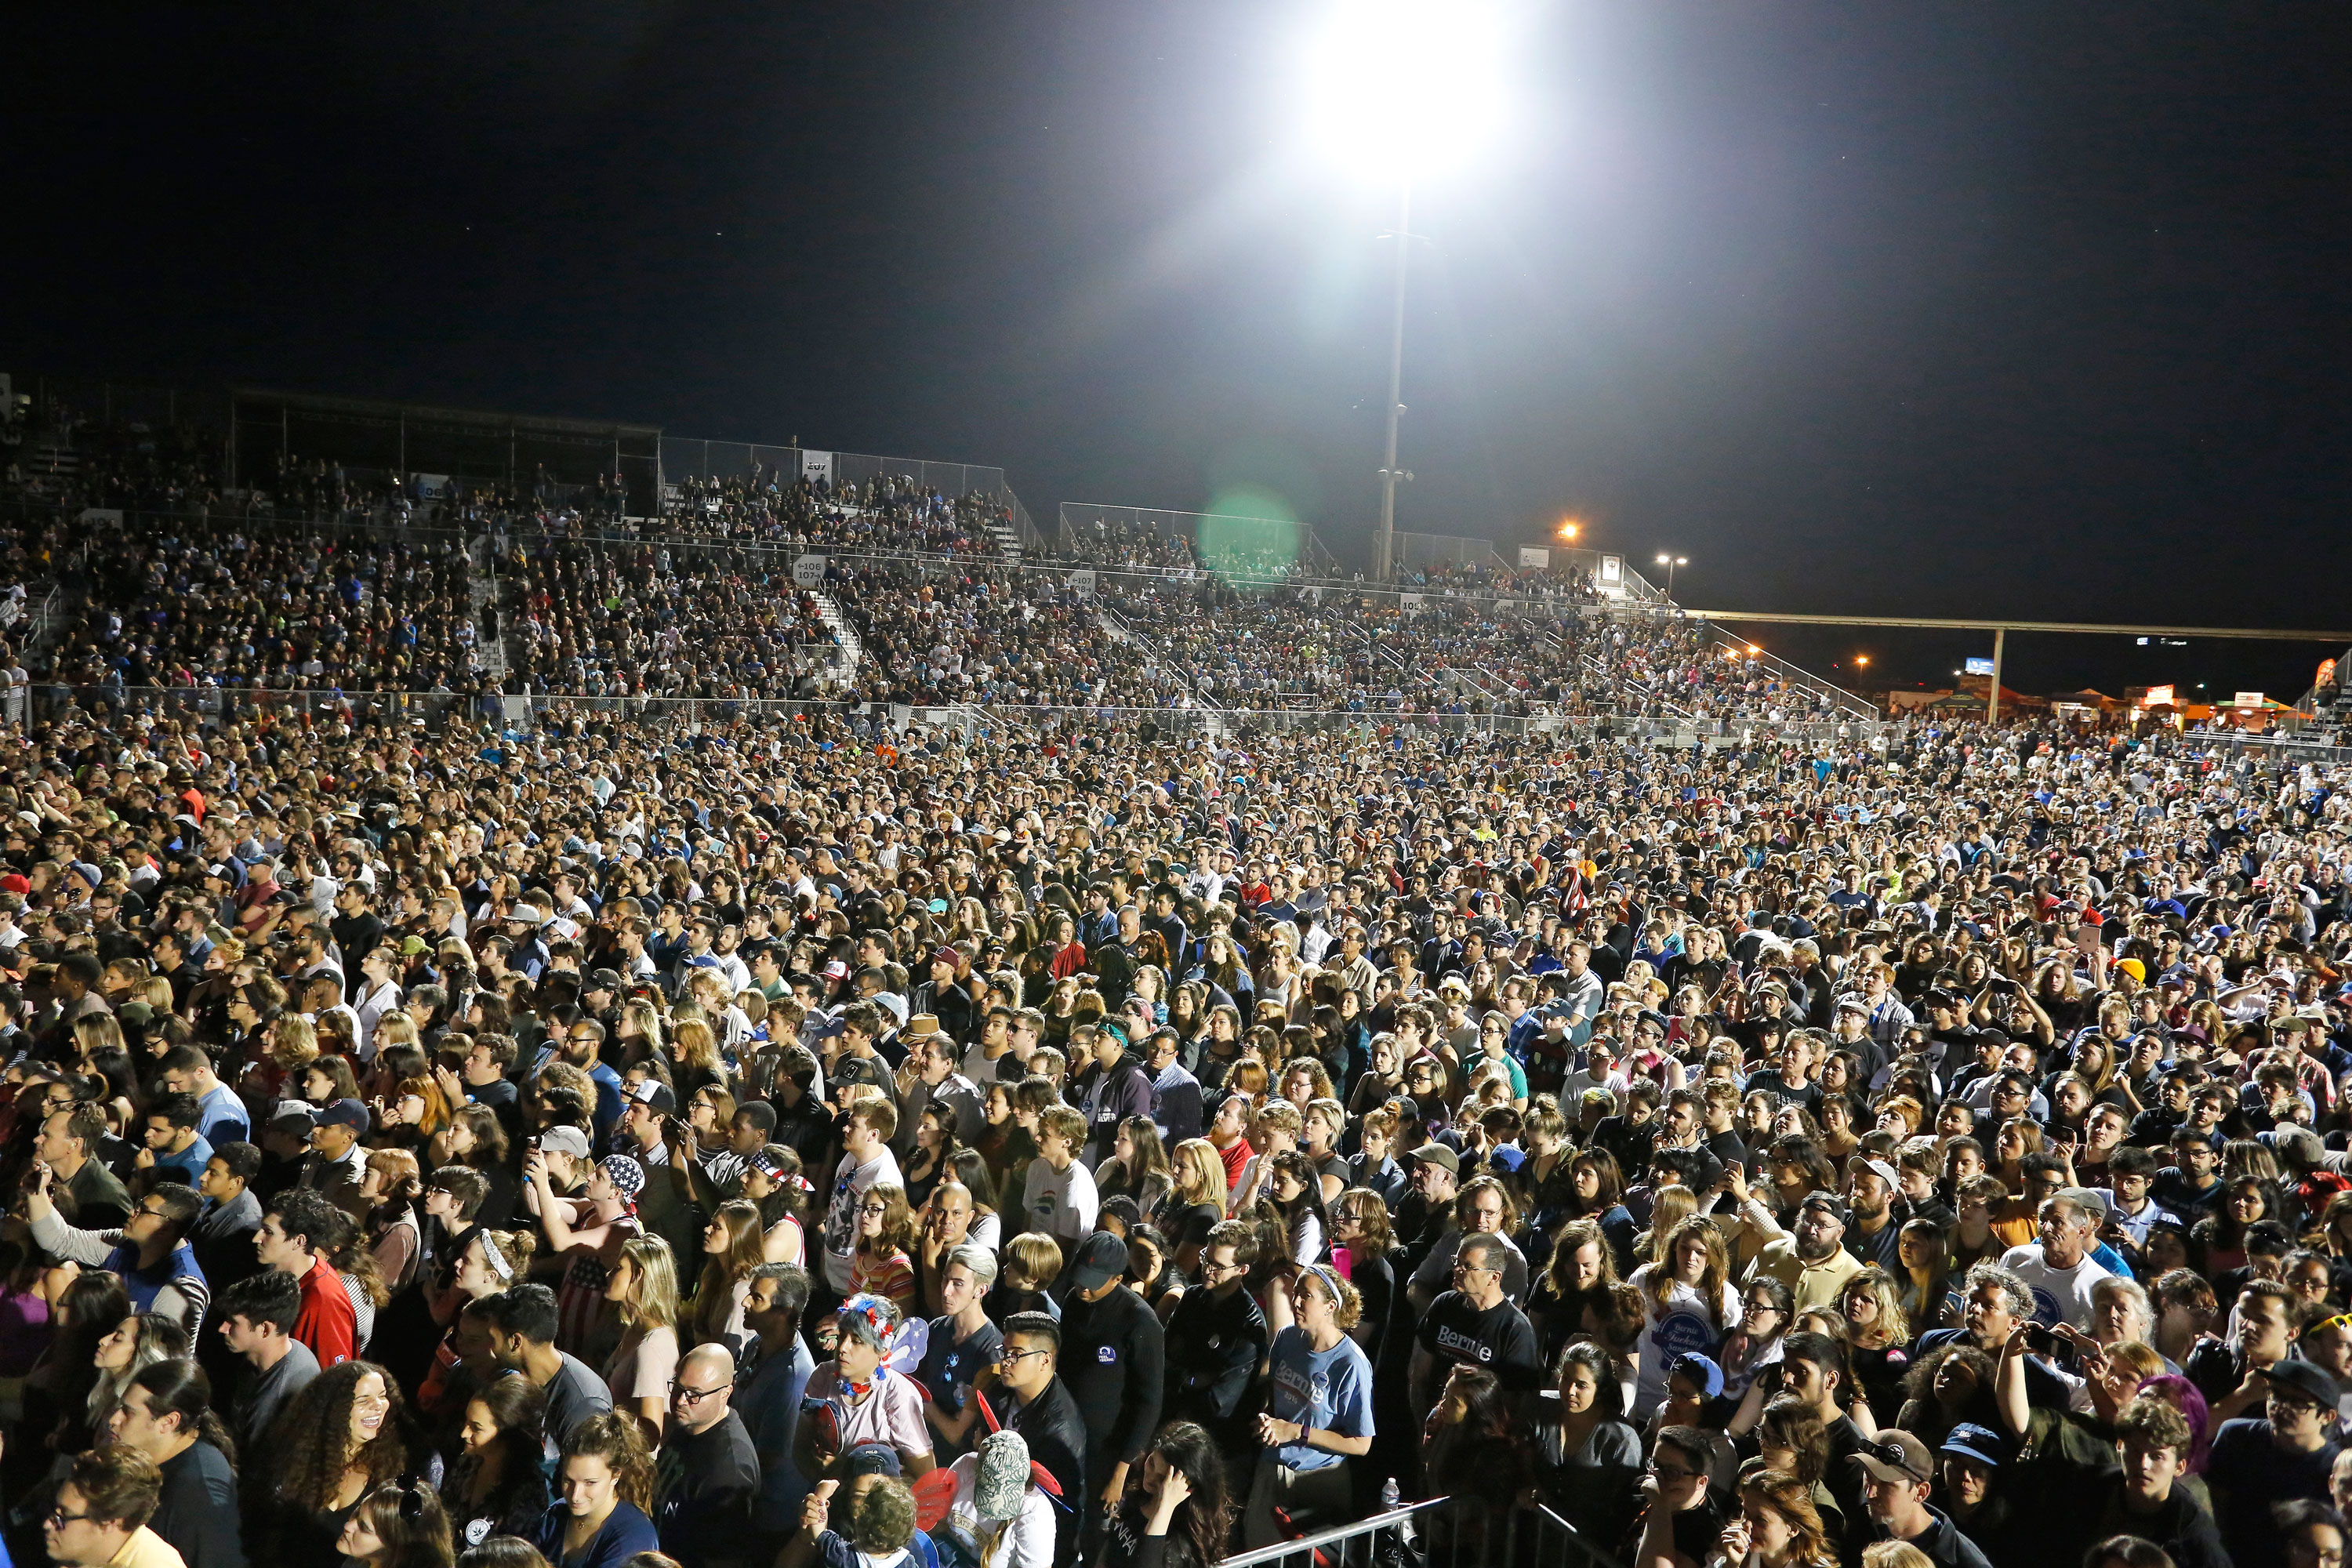 Upward of 20,000 people packed Bonney Field at Cal Expo in Sacramento on May 9 for Democratic presidential candidate Bernie Sanders. Photo by Stephen de Ropp.